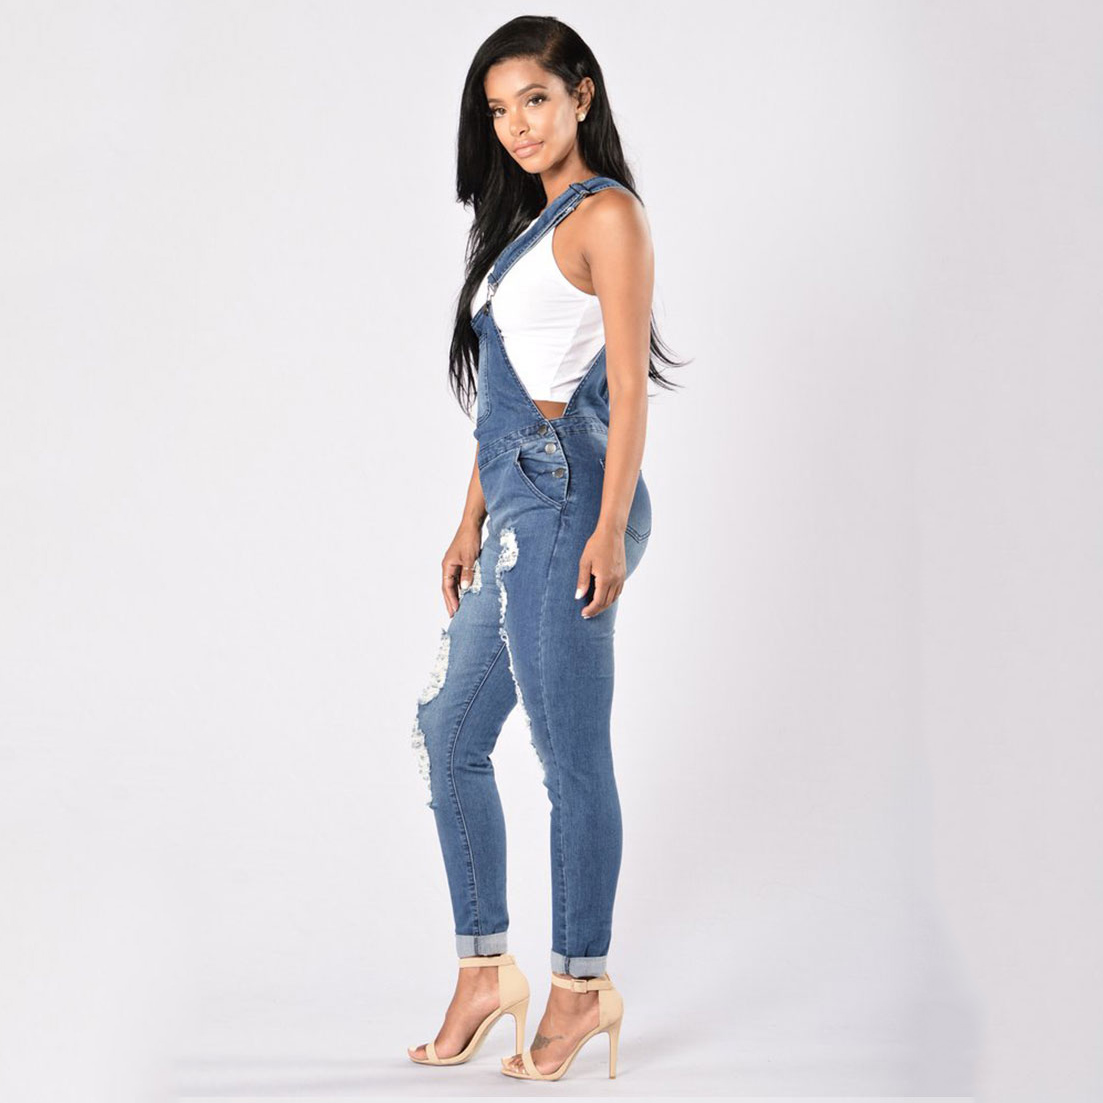 7b32a49b547 Hot New 2018 Women Ripped Denim Jumpsuits Women s Overalls Casual Sexy  Romper Plus Size Ladies Blue Denim Jeans Jumpsuit-in Jeans from Women s  Clothing on ...